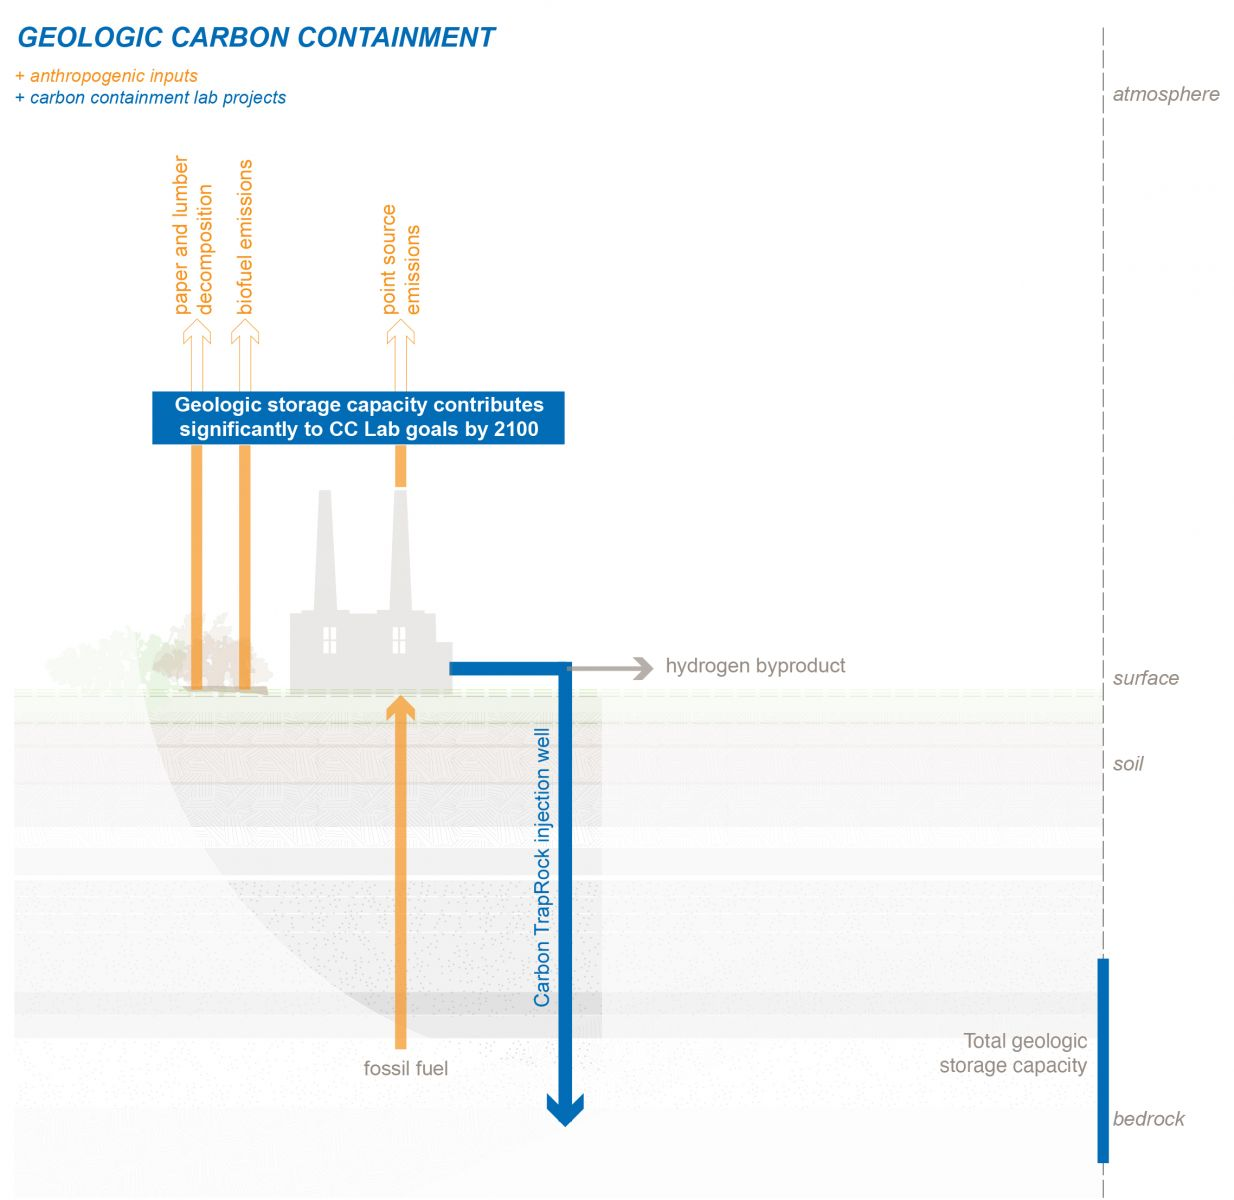 Graphic of the cycle of geologic carbon containment.